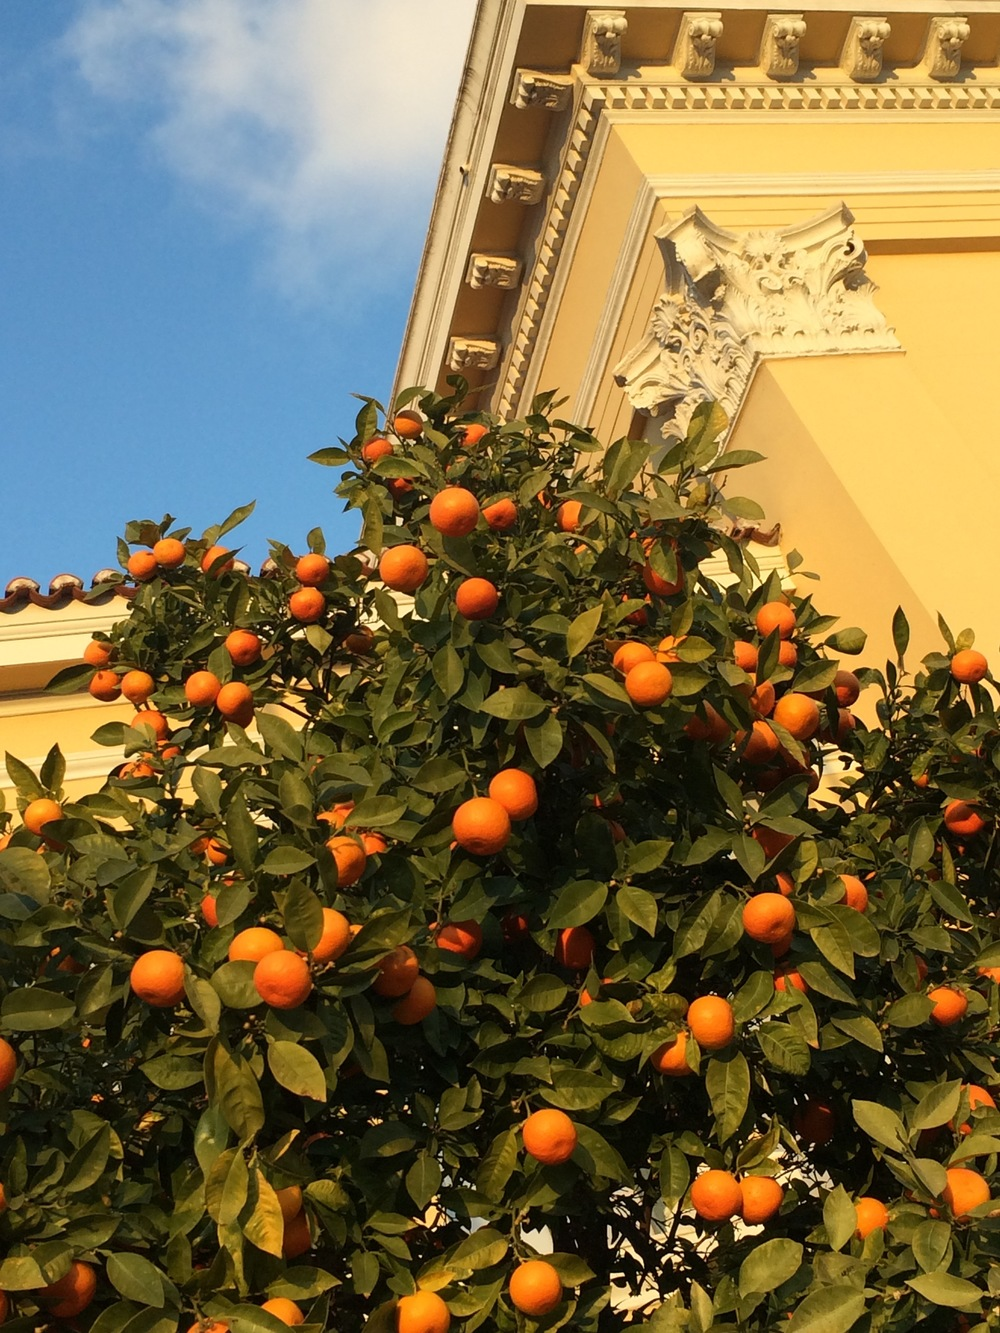 Beautifully ripe oranges in winter weather